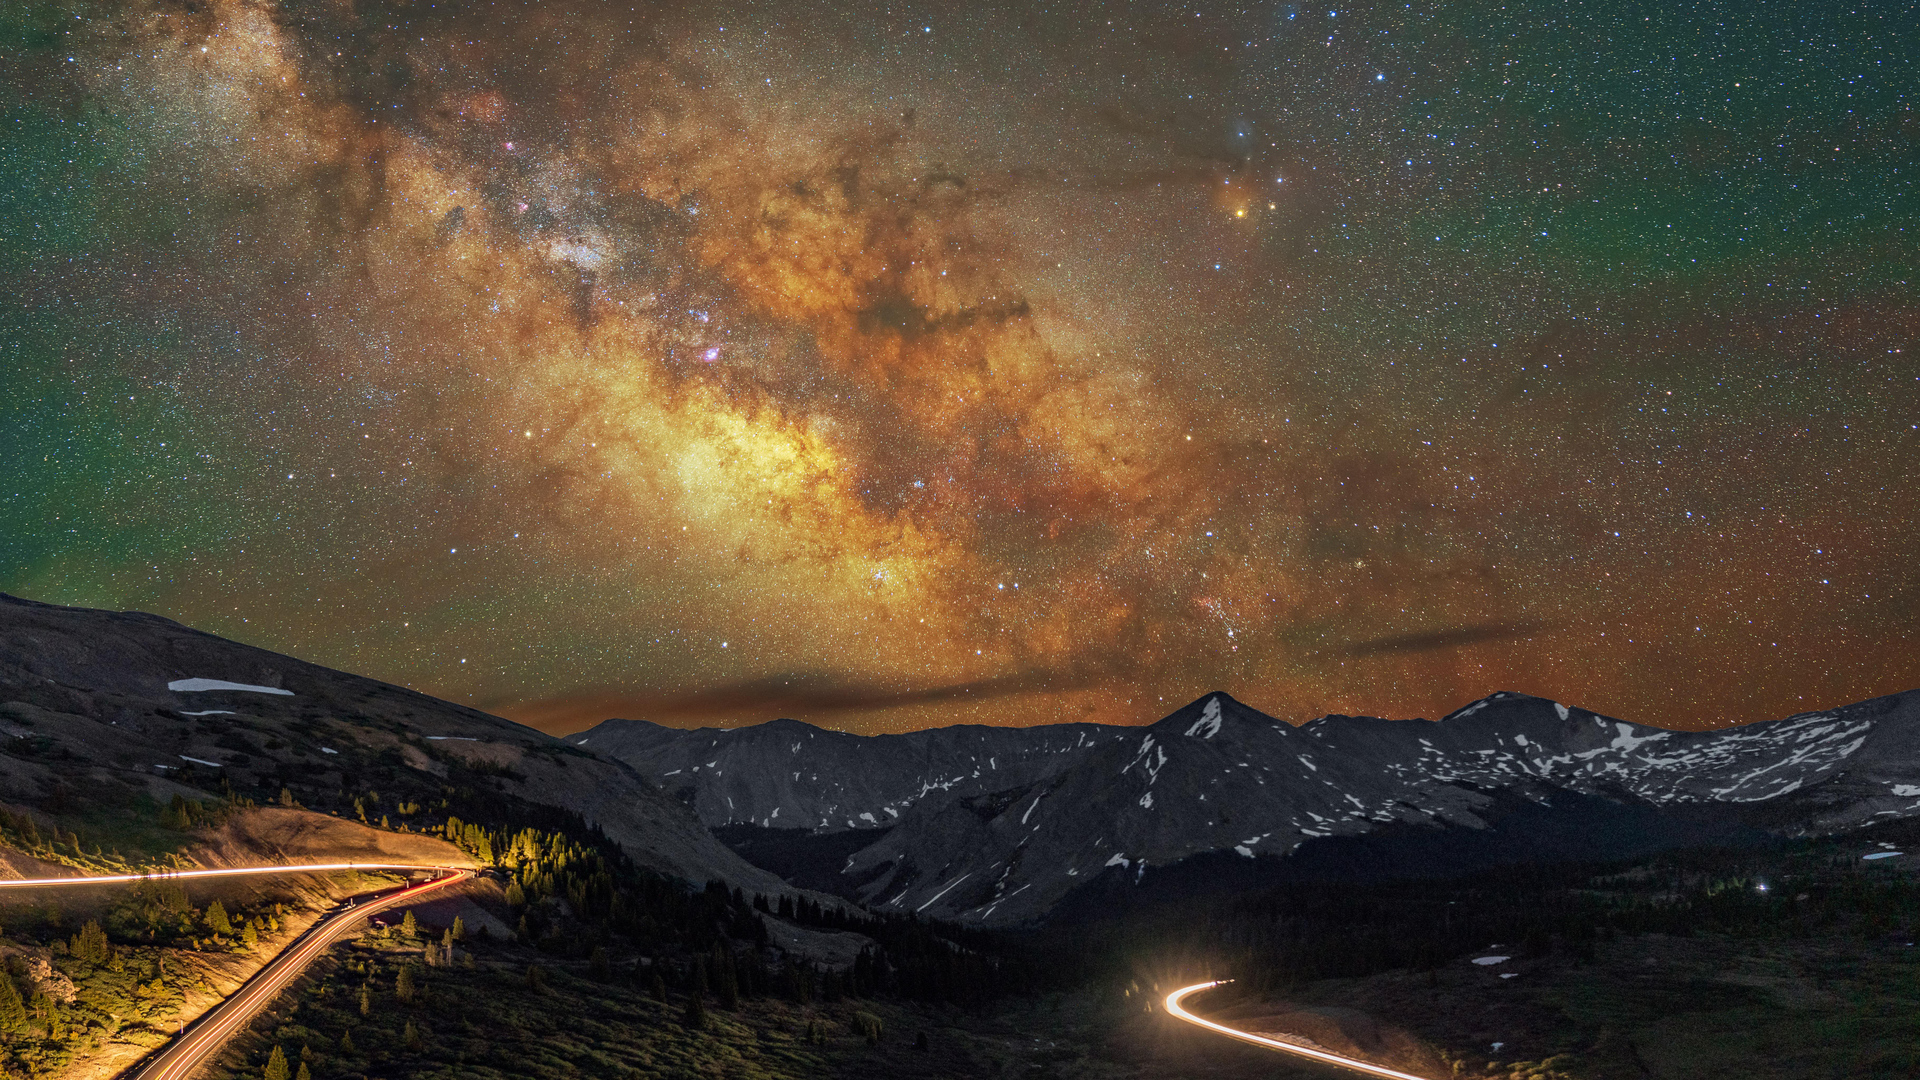 mountains-long-exposure-milky-way-8k-cx.jpg